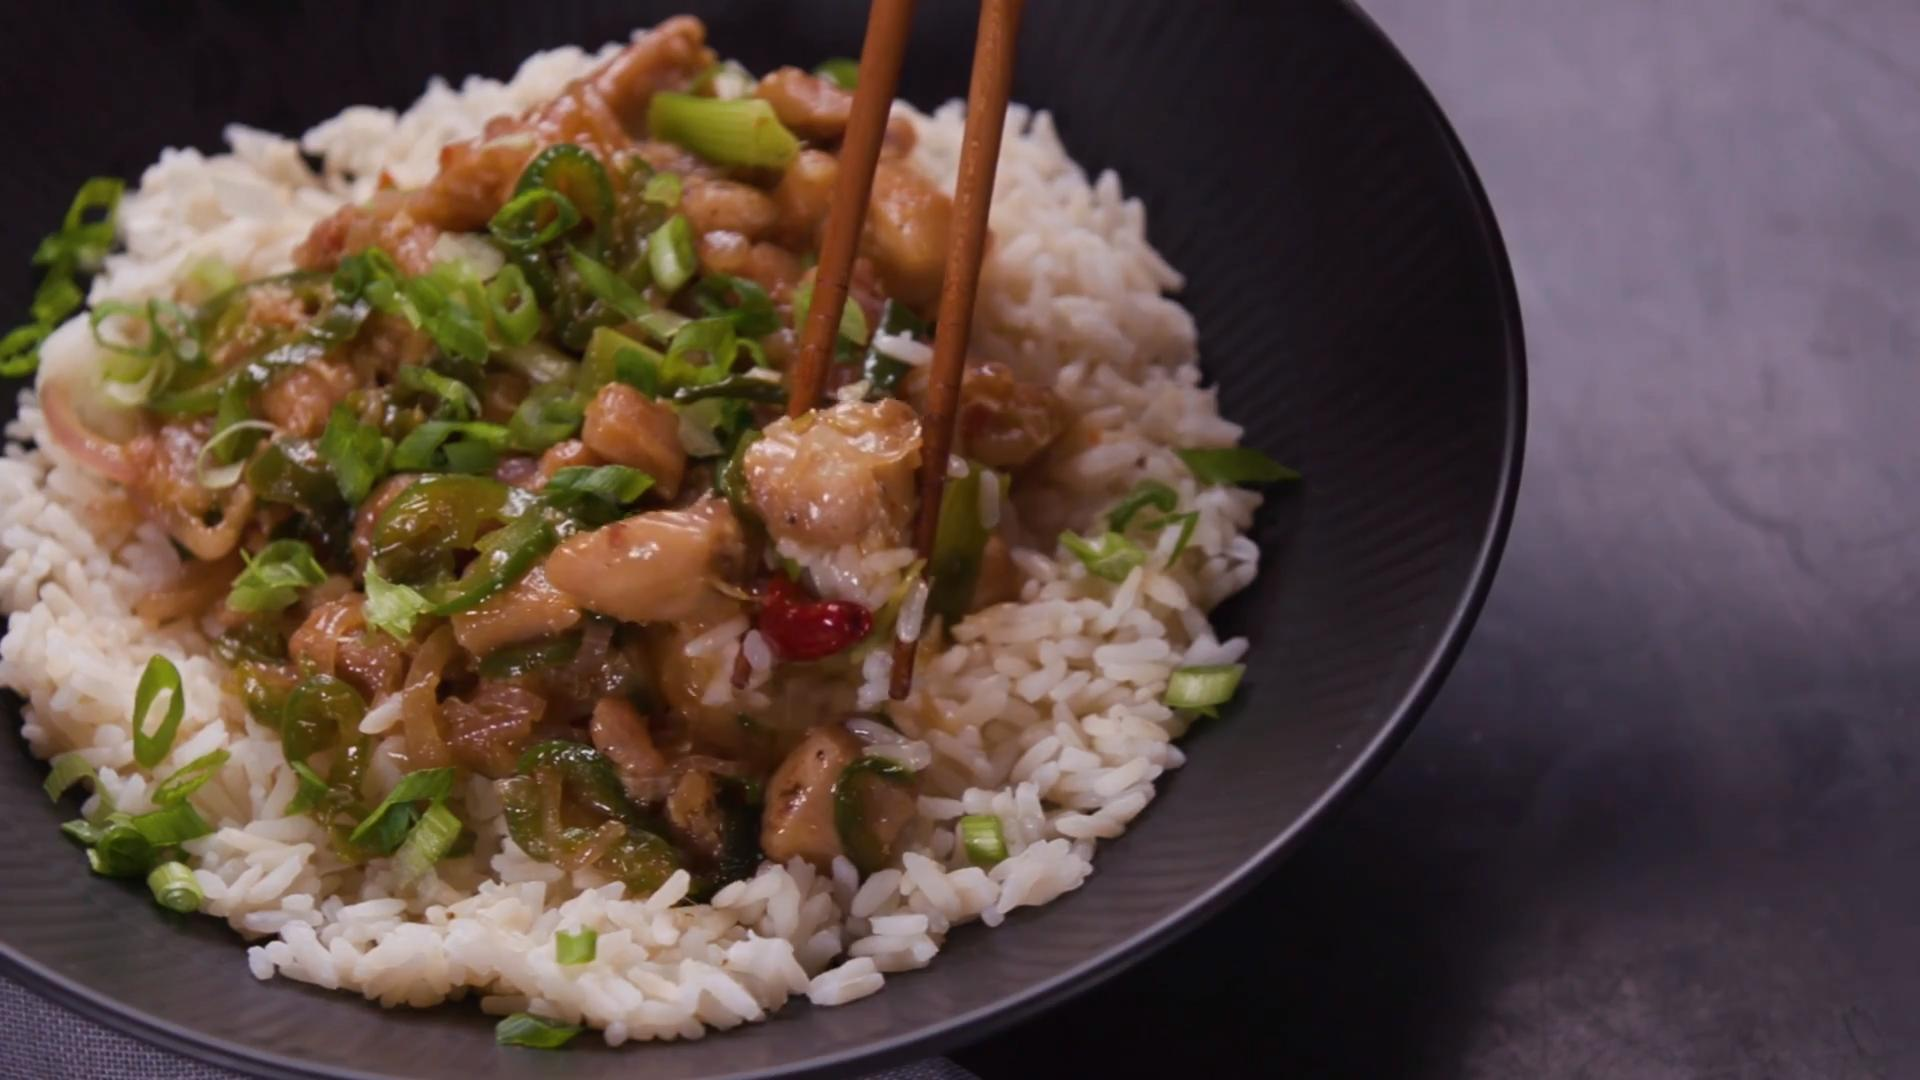 Spicy Lemongrass Chicken Recipe Charles Phan Food Wine